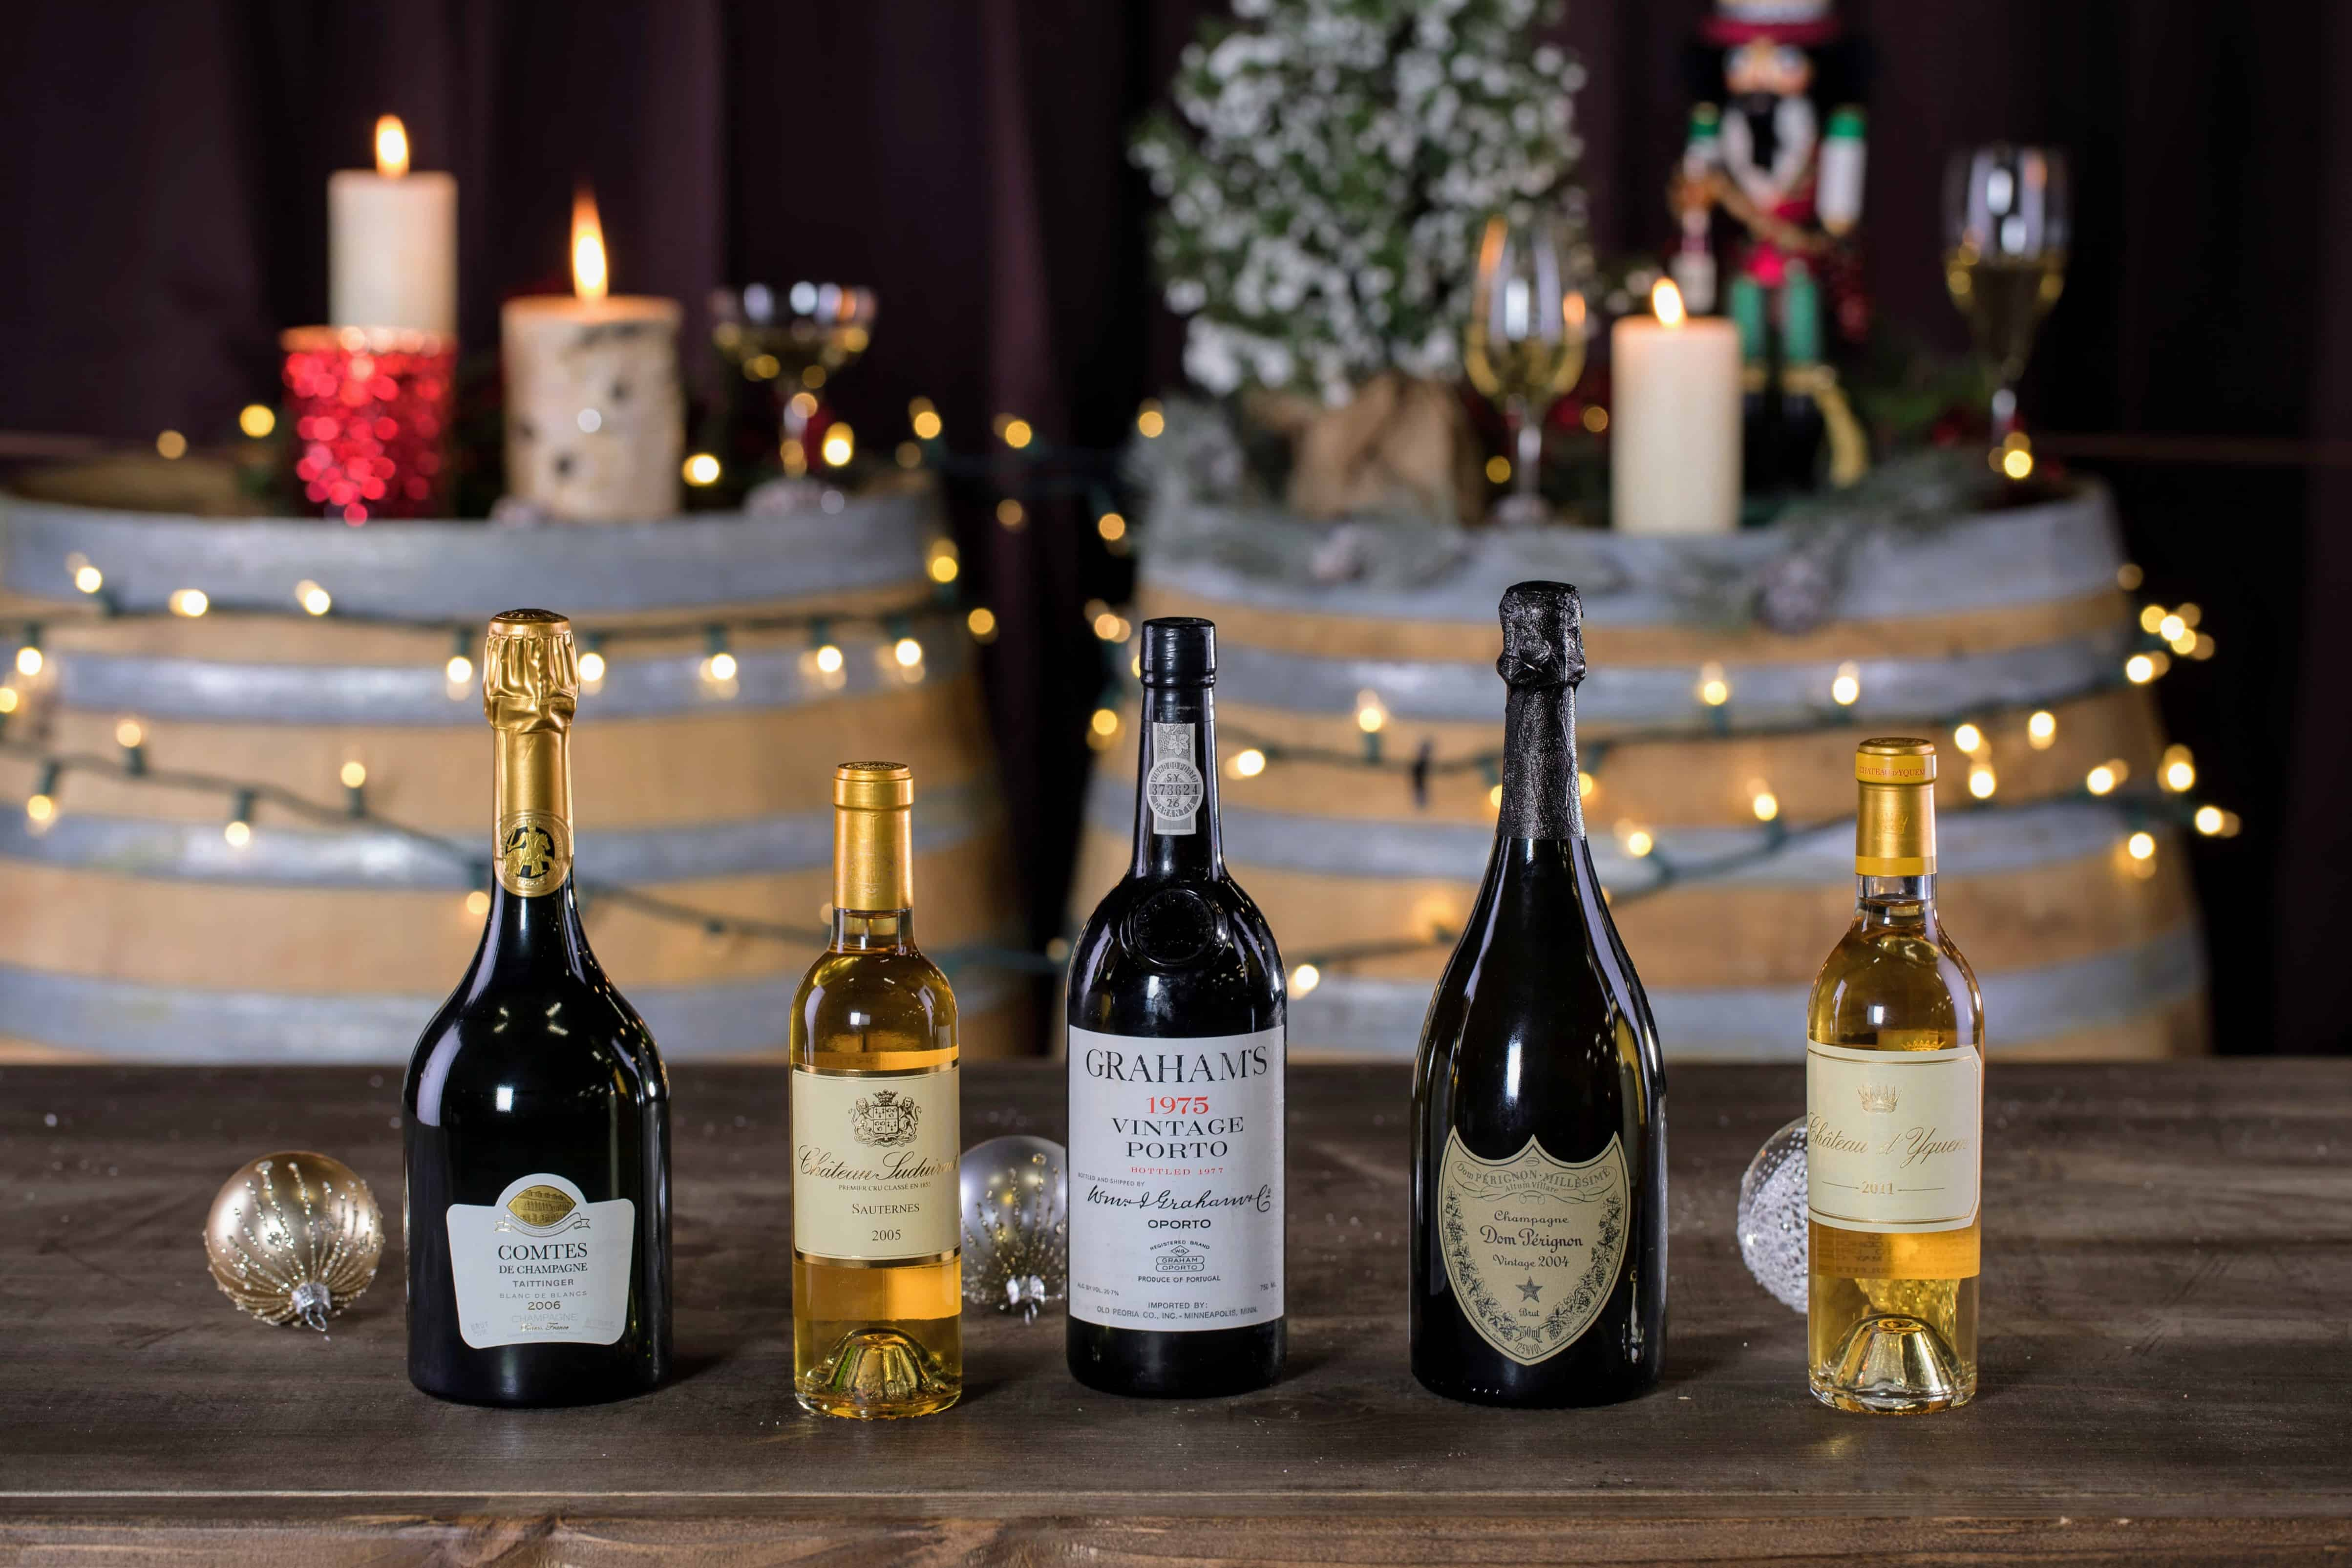 The best holiday wines of 2018 are Sauternes and Champagne.